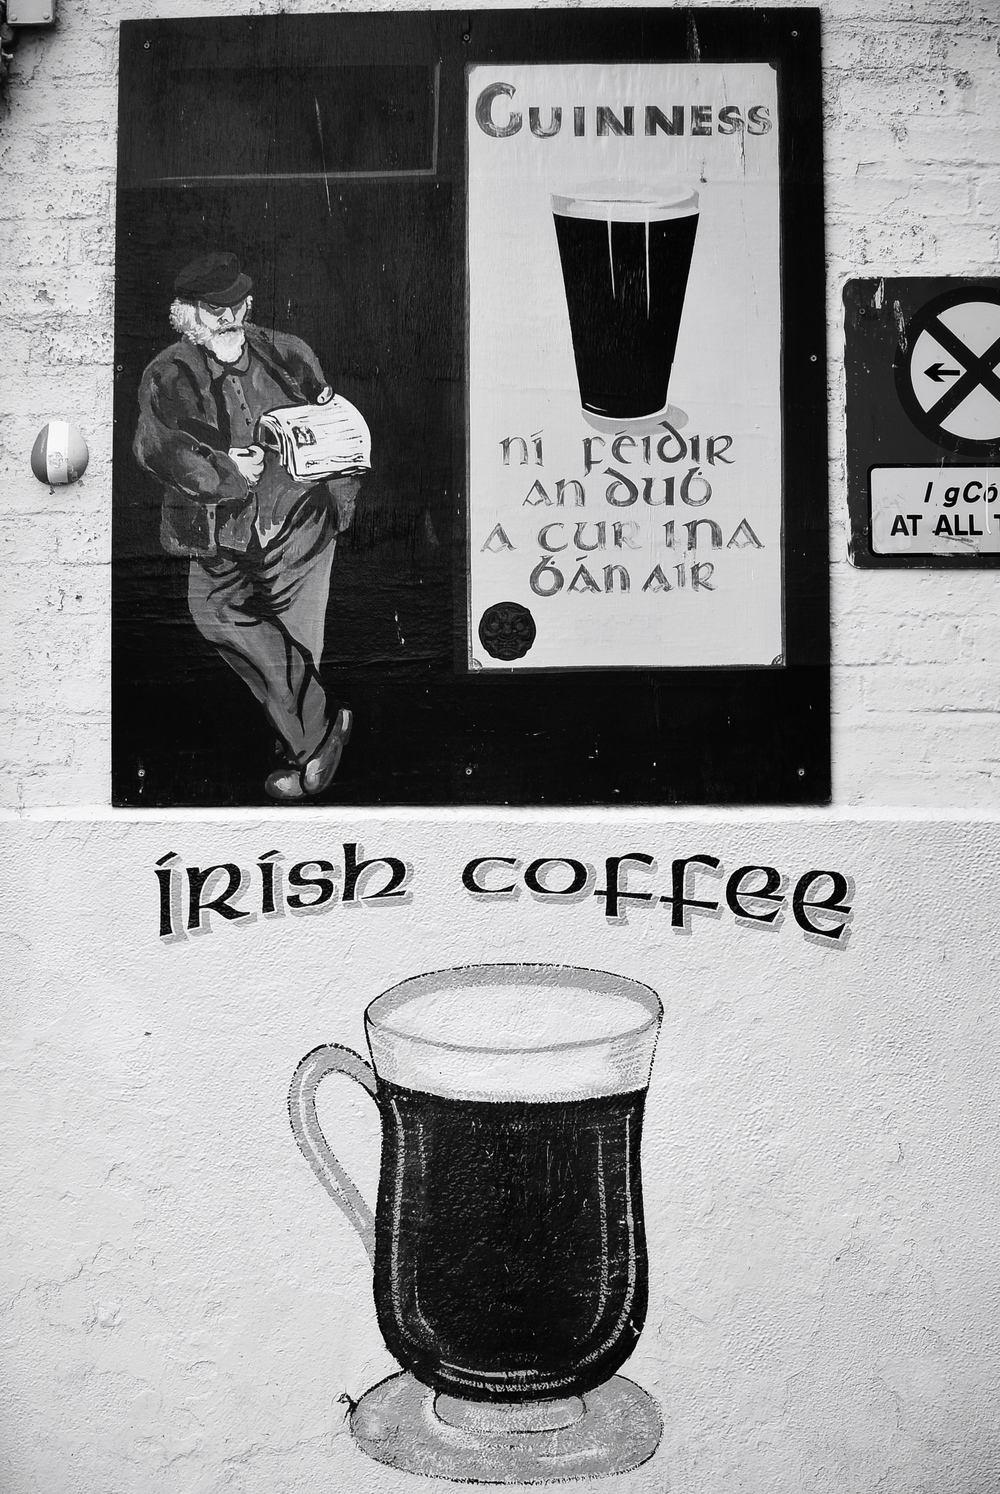 Guinness and Irish Coffee Street Art, Dublin